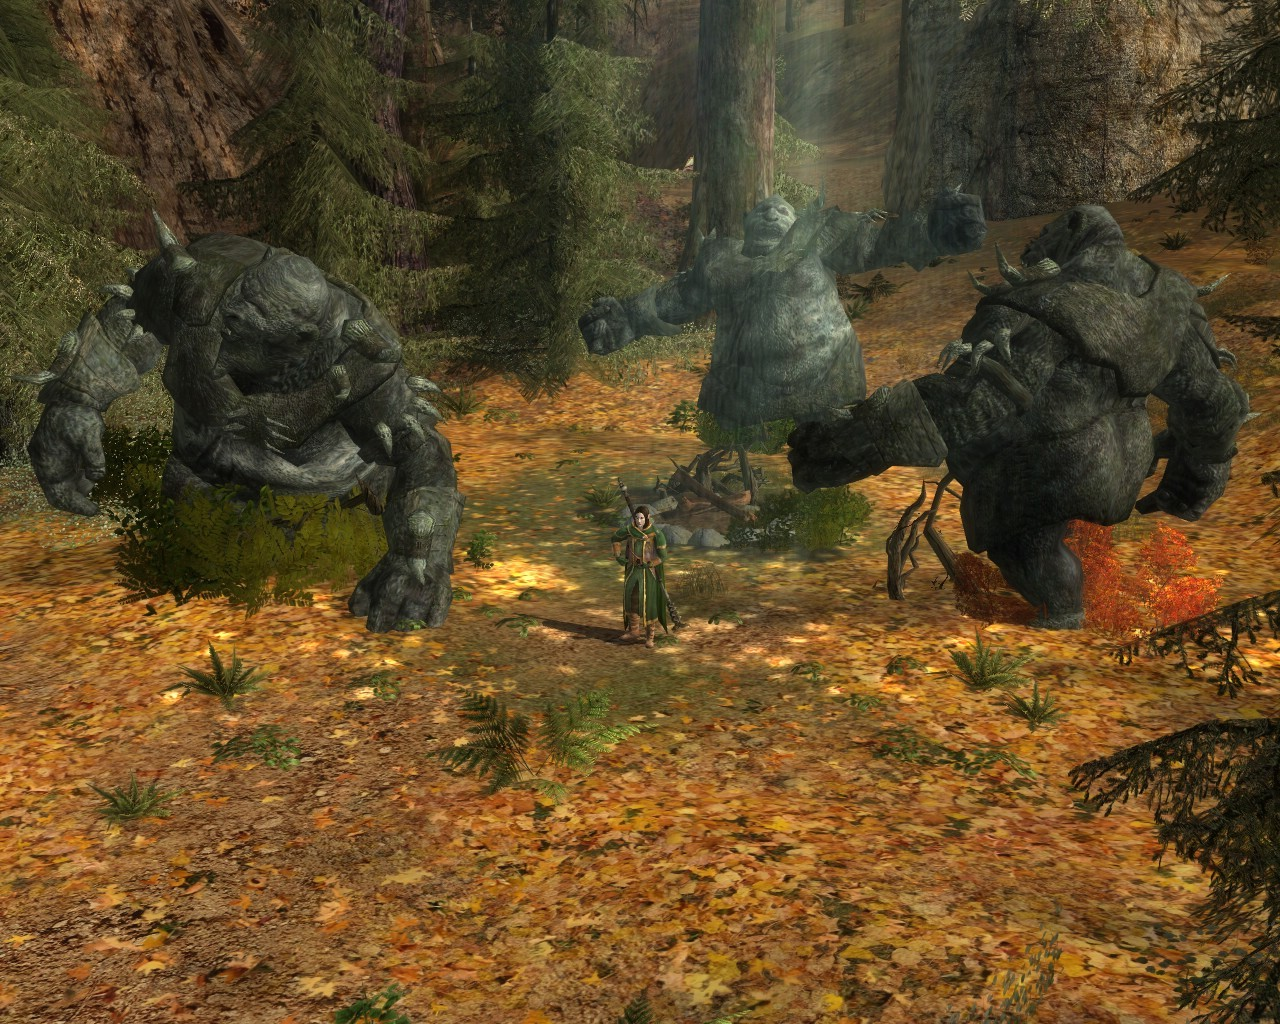 The 3 Trolls Mmorpg Com Lord Of The Rings Online Galleries